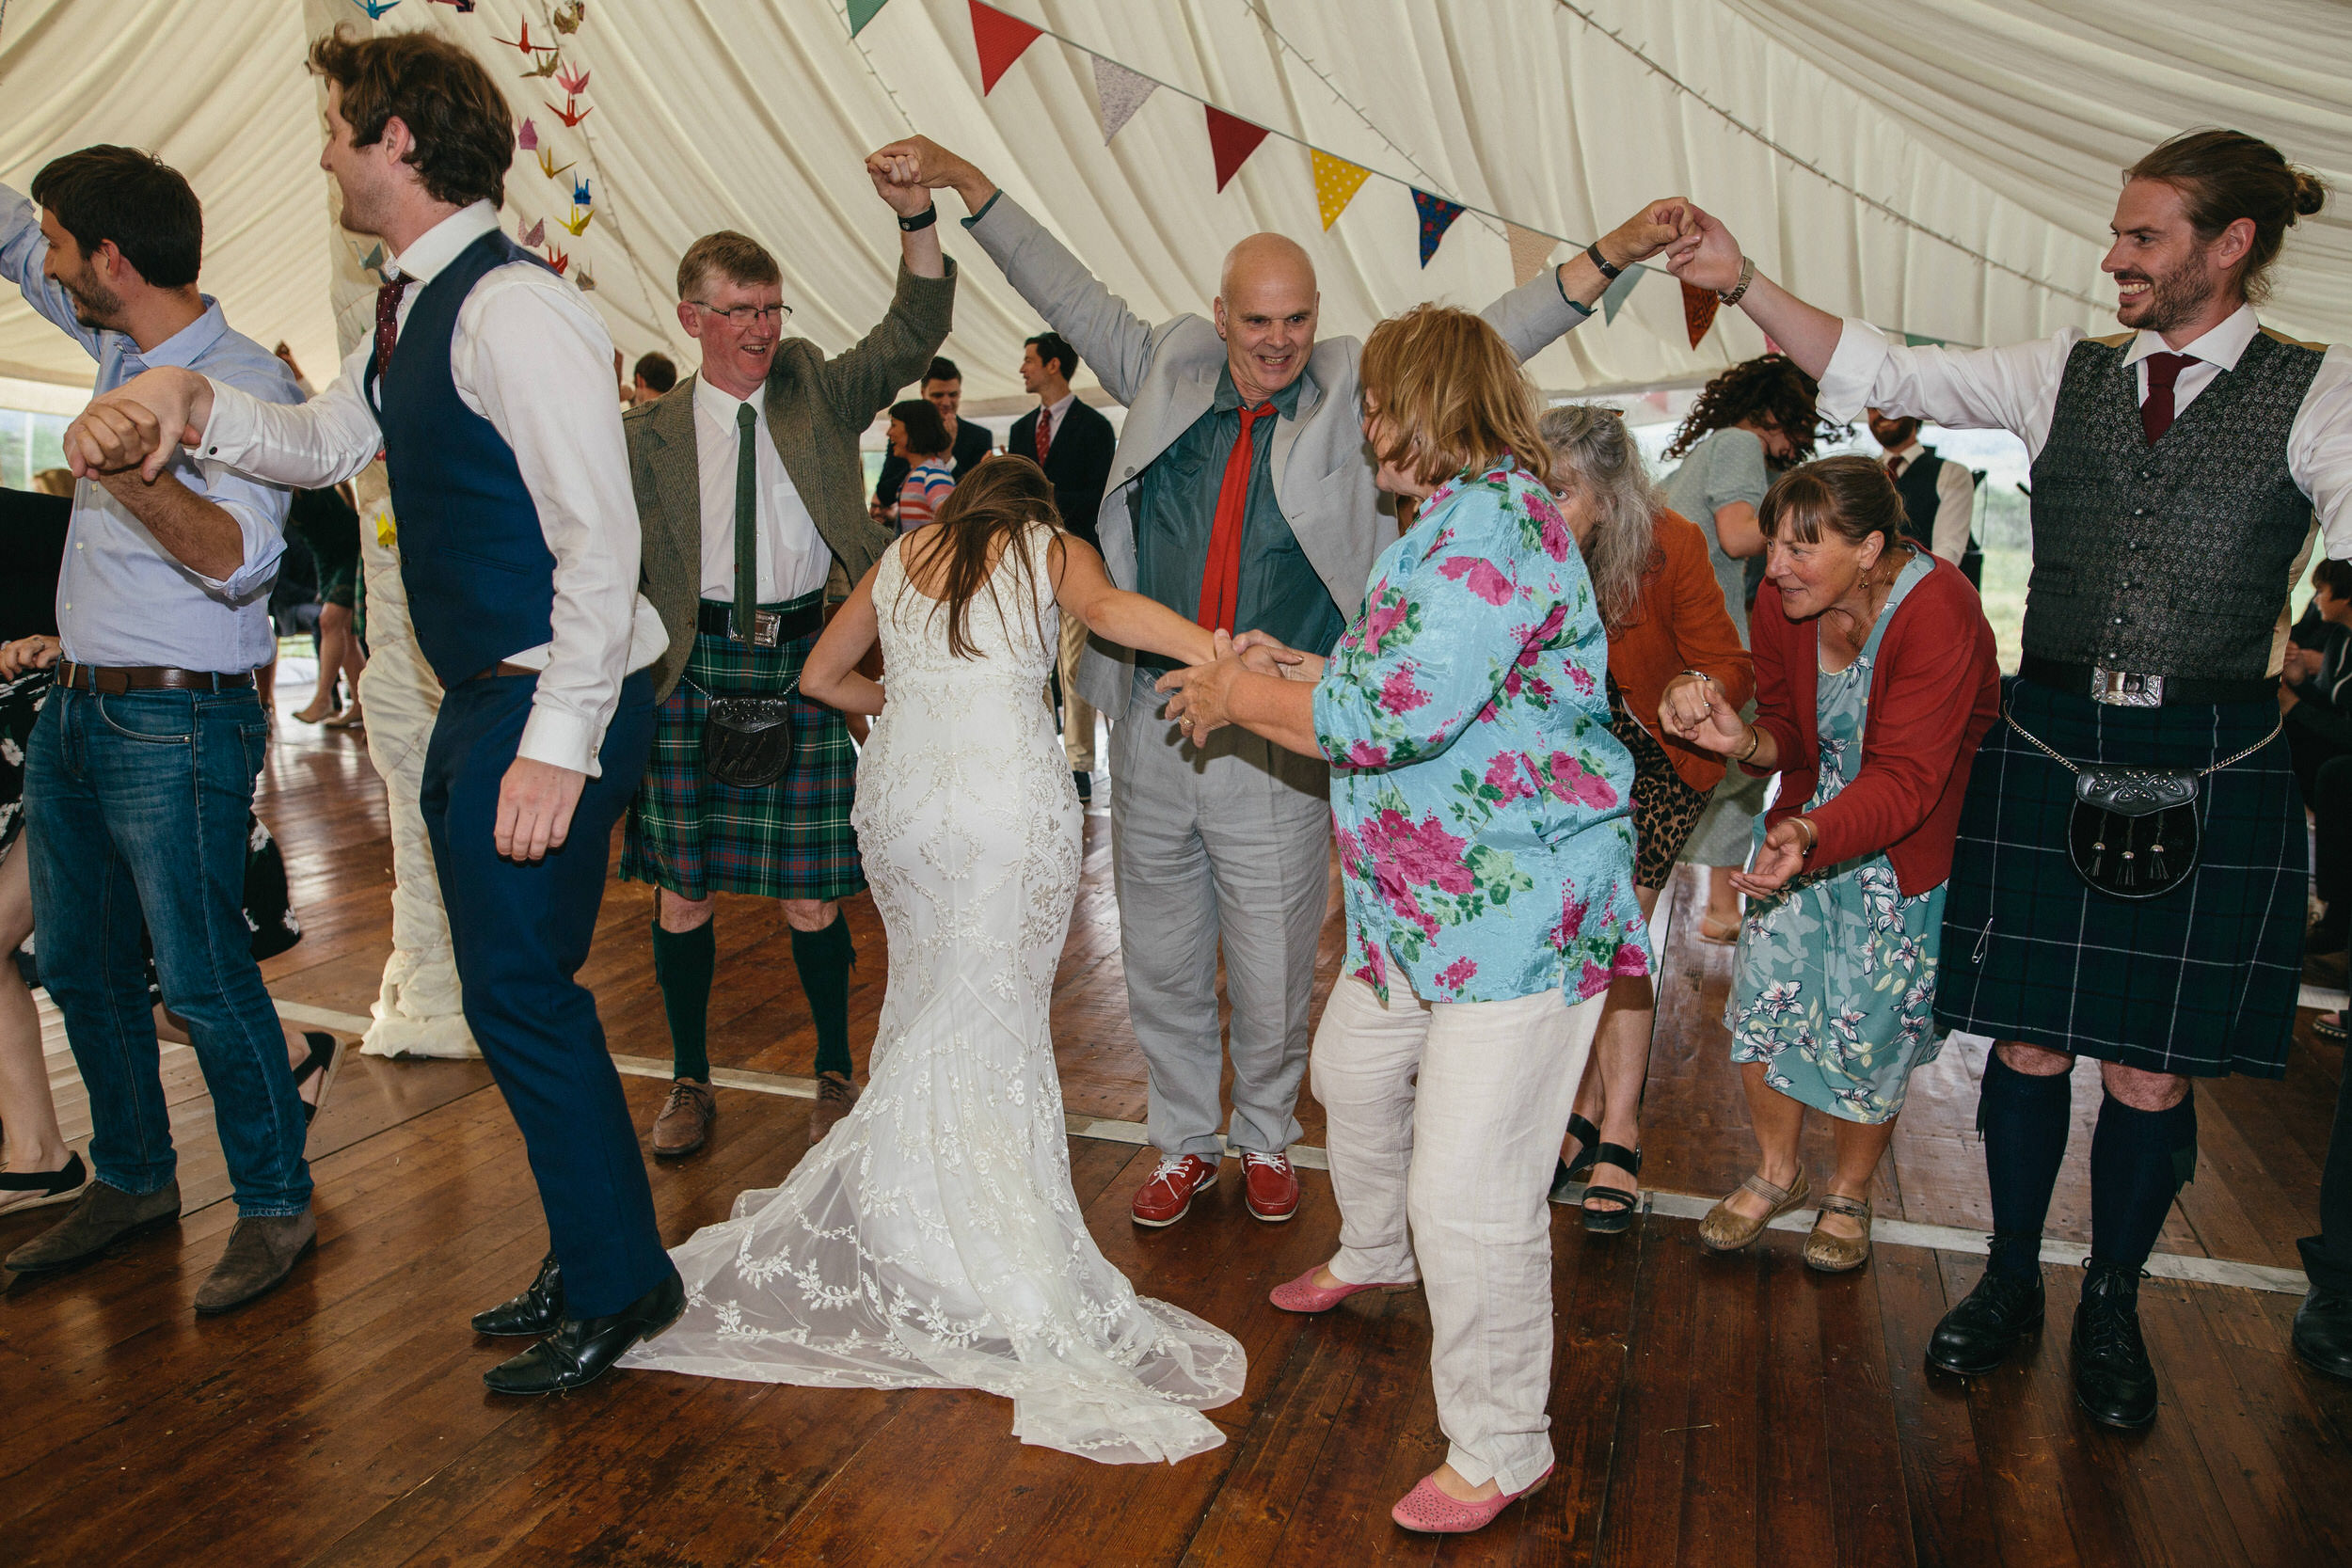 Alternative Quirky Wedding Photographer Scotland Borders Edinburgh 156.jpg